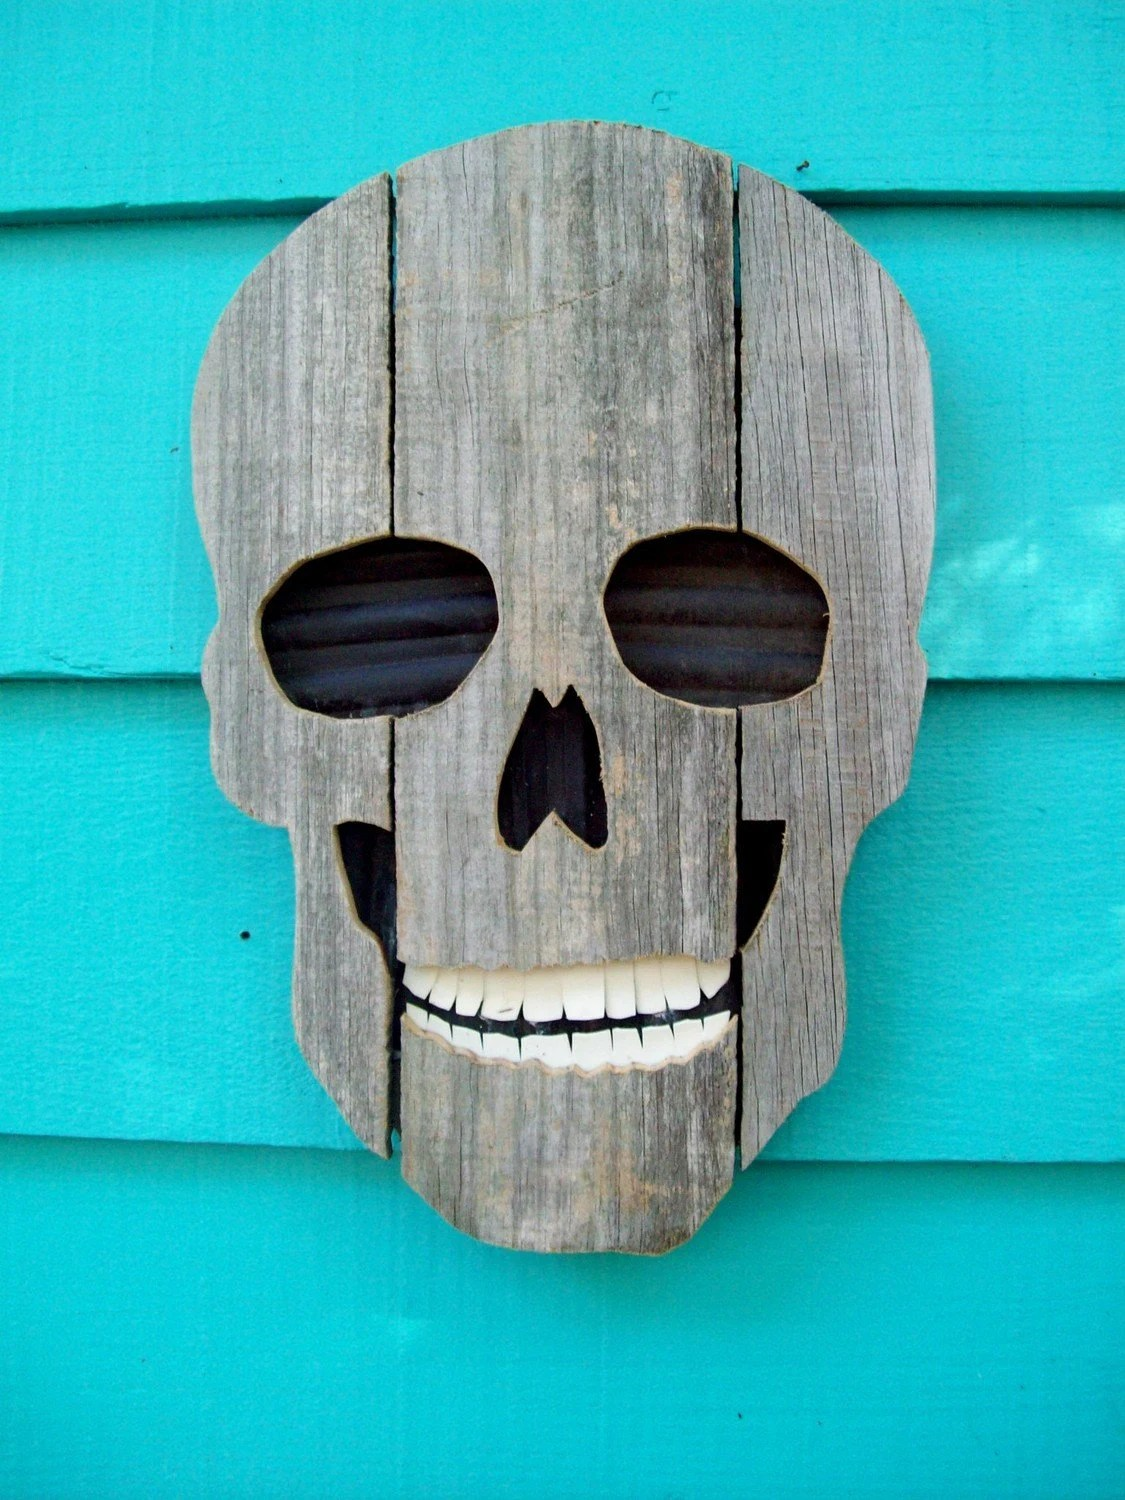 Large skull made of recycled wood and plastic